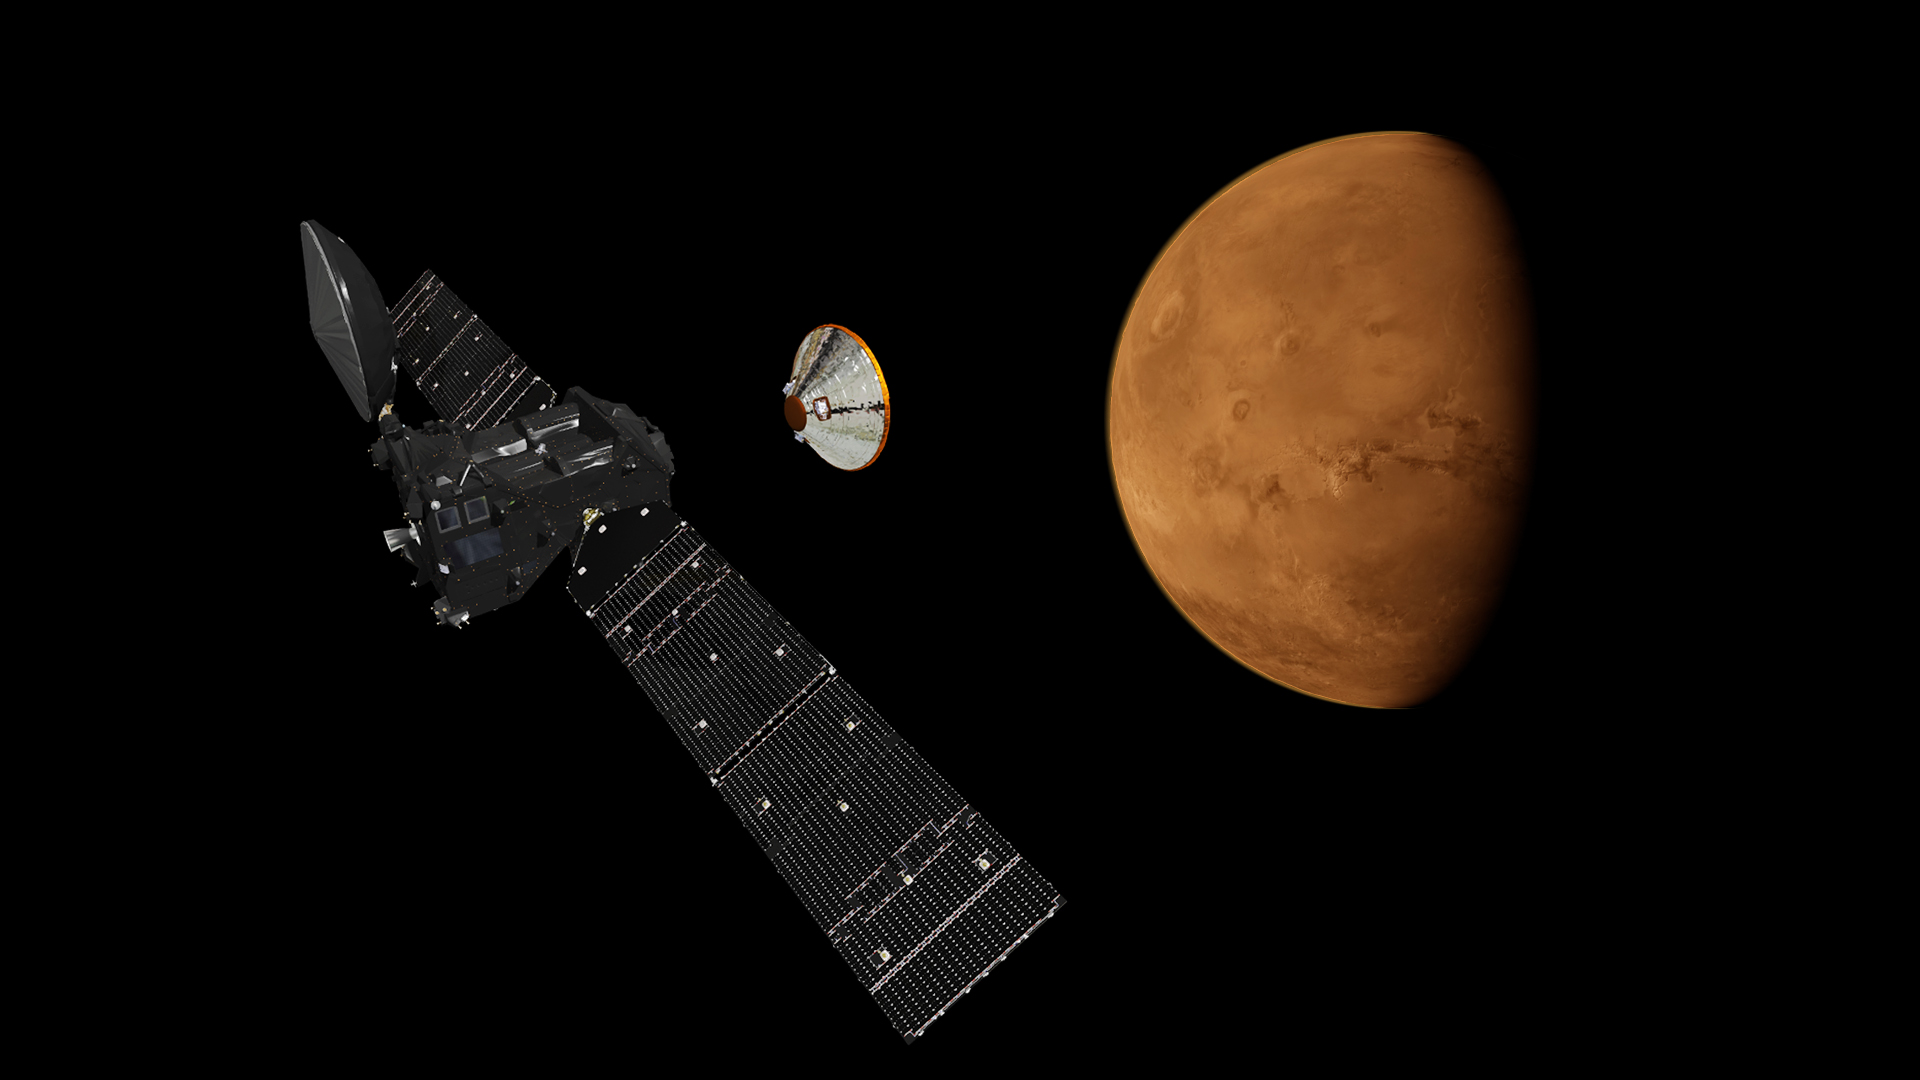 The Science of ExoMars: New Mission to Hunt for Mars Life